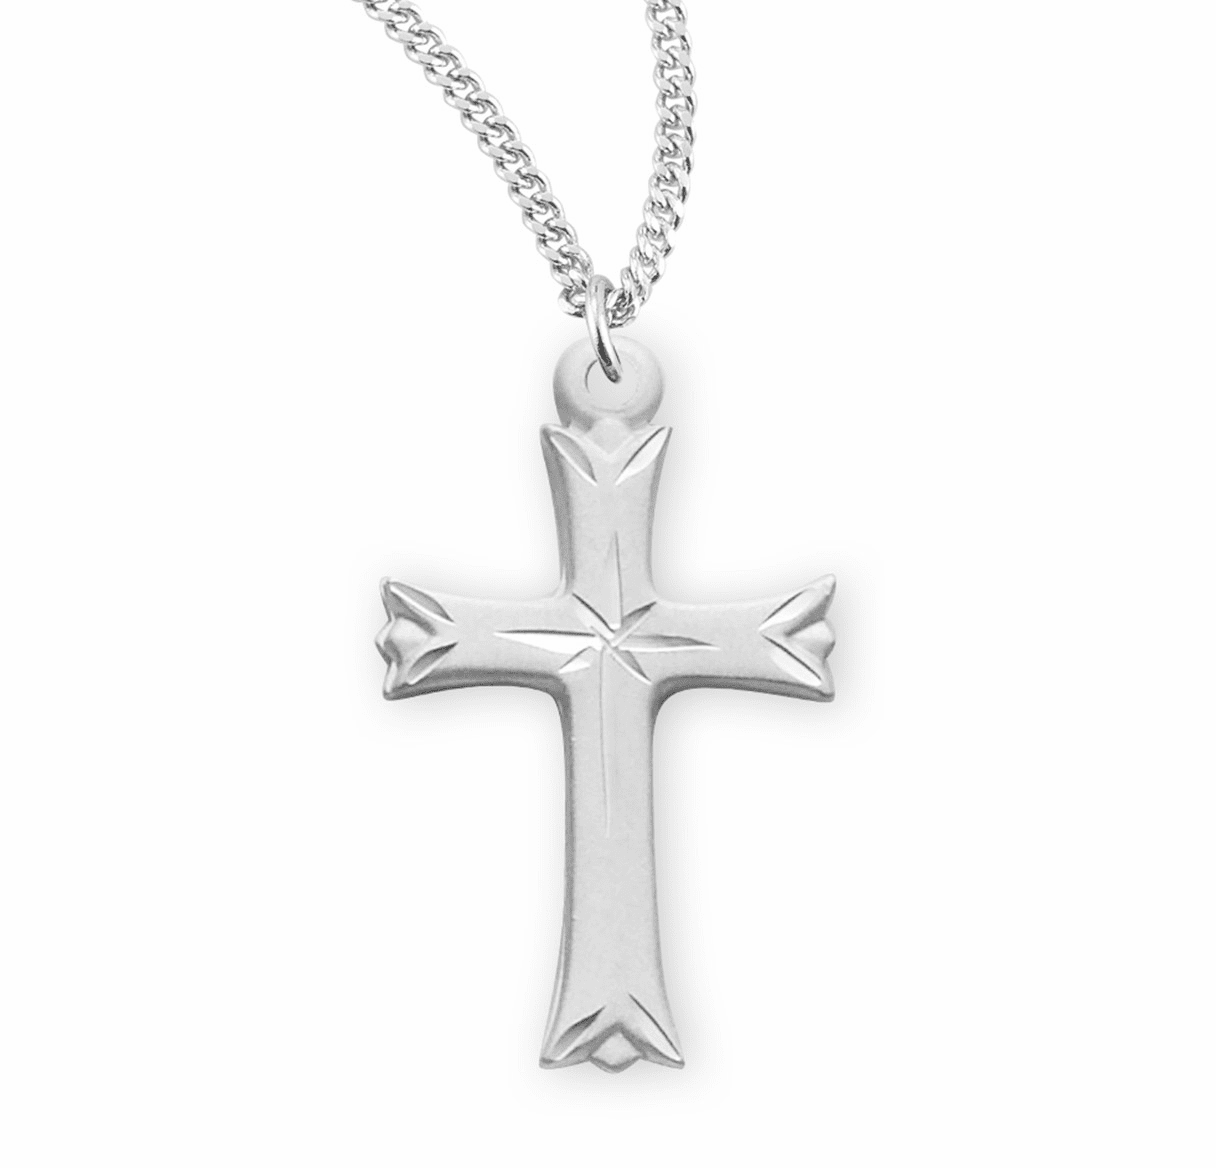 HMH Religious Medium Etched Cross w/Star with Chain